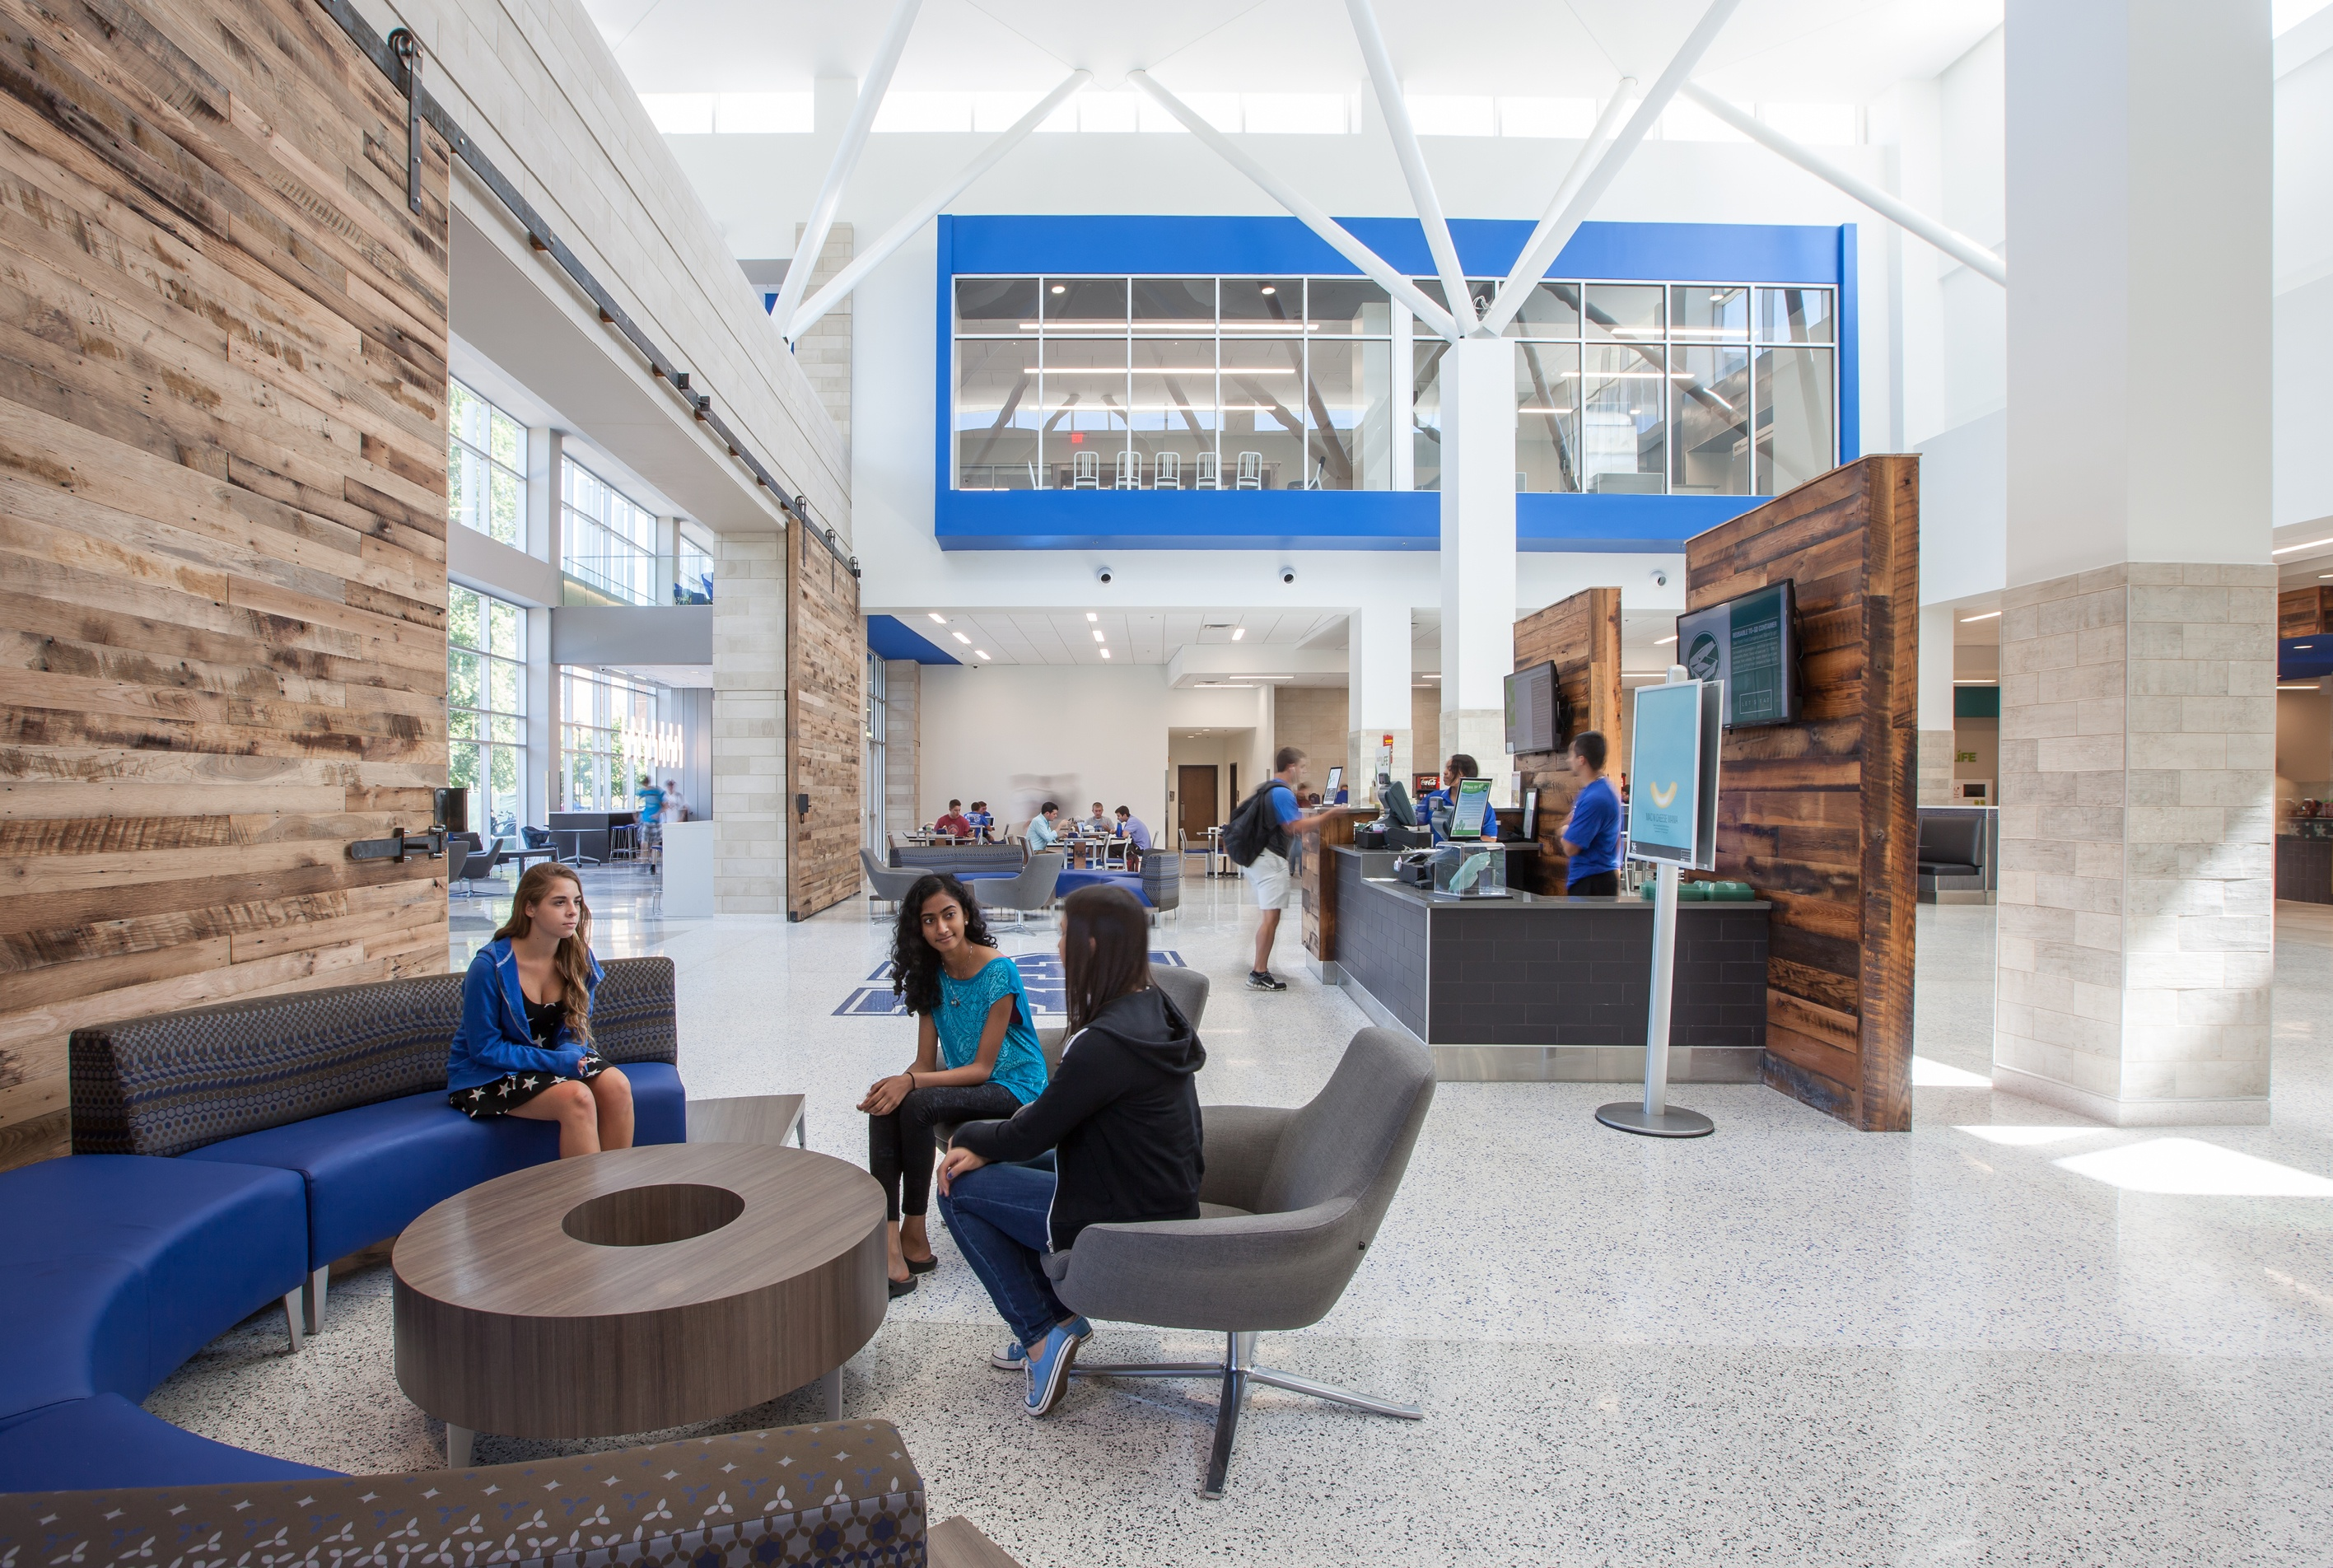 University Commons University of Kentucky cafeteria design